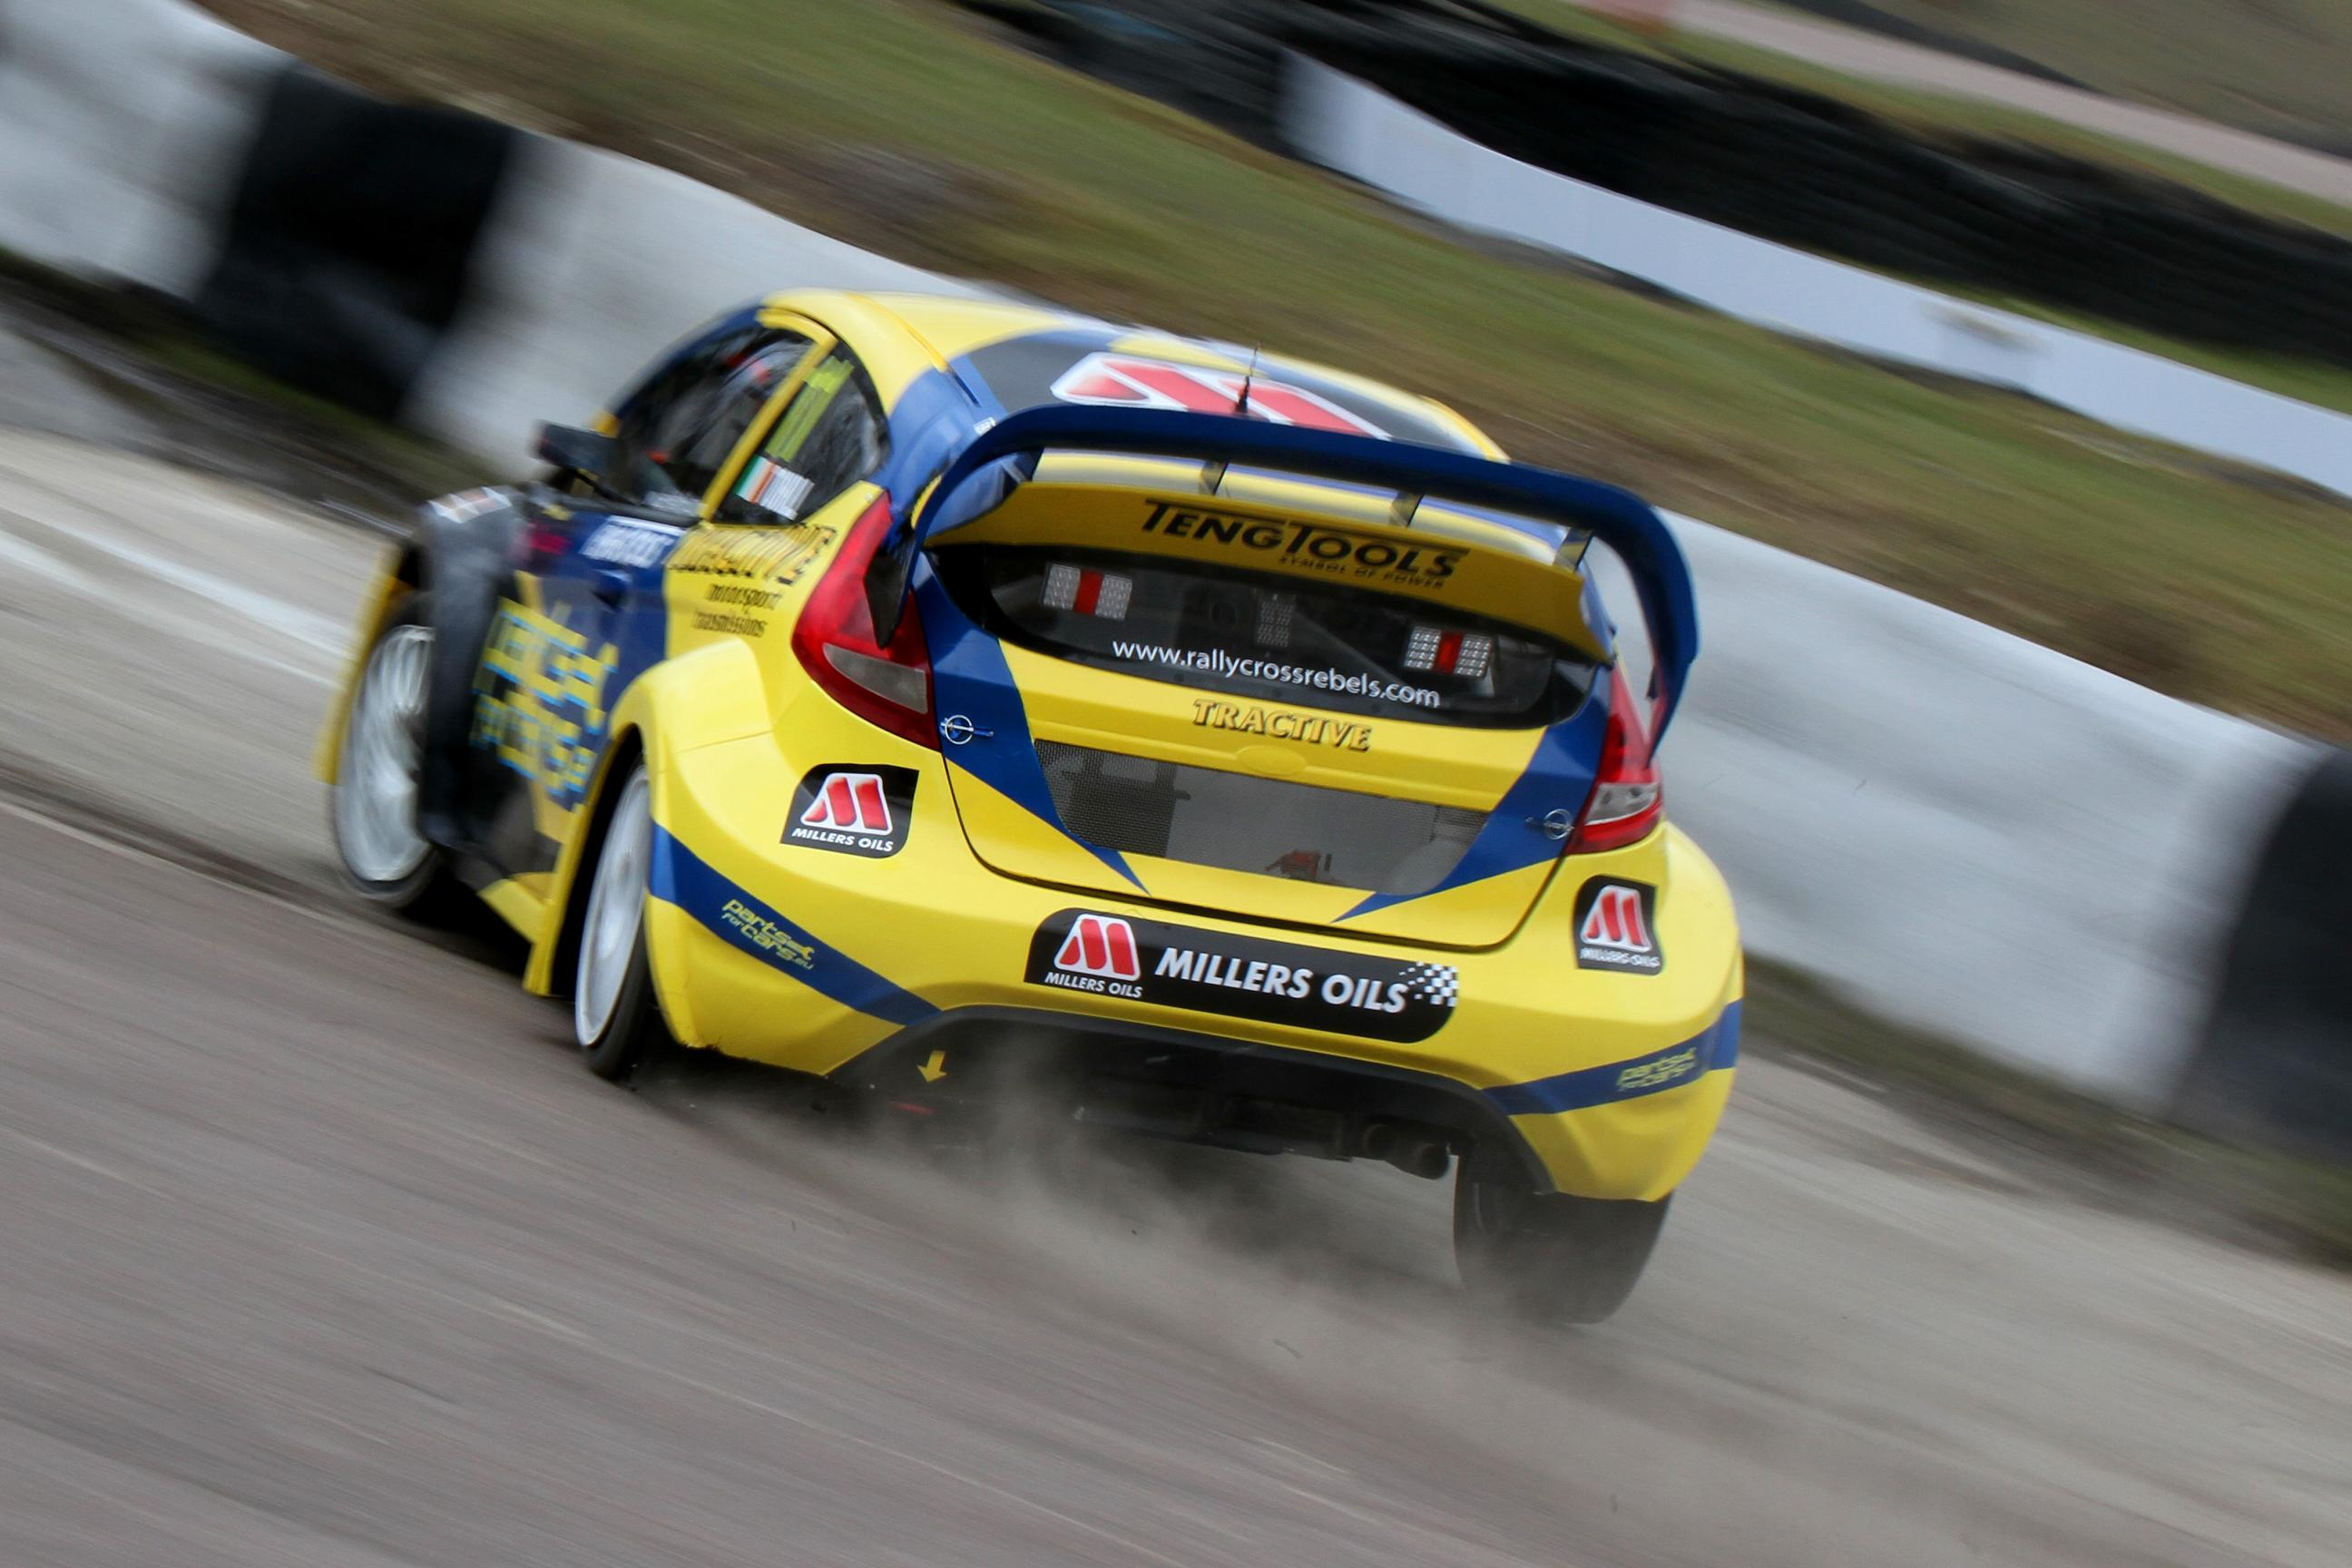 The First Ever FIA World Rallycross Championship Is Coming In 2014